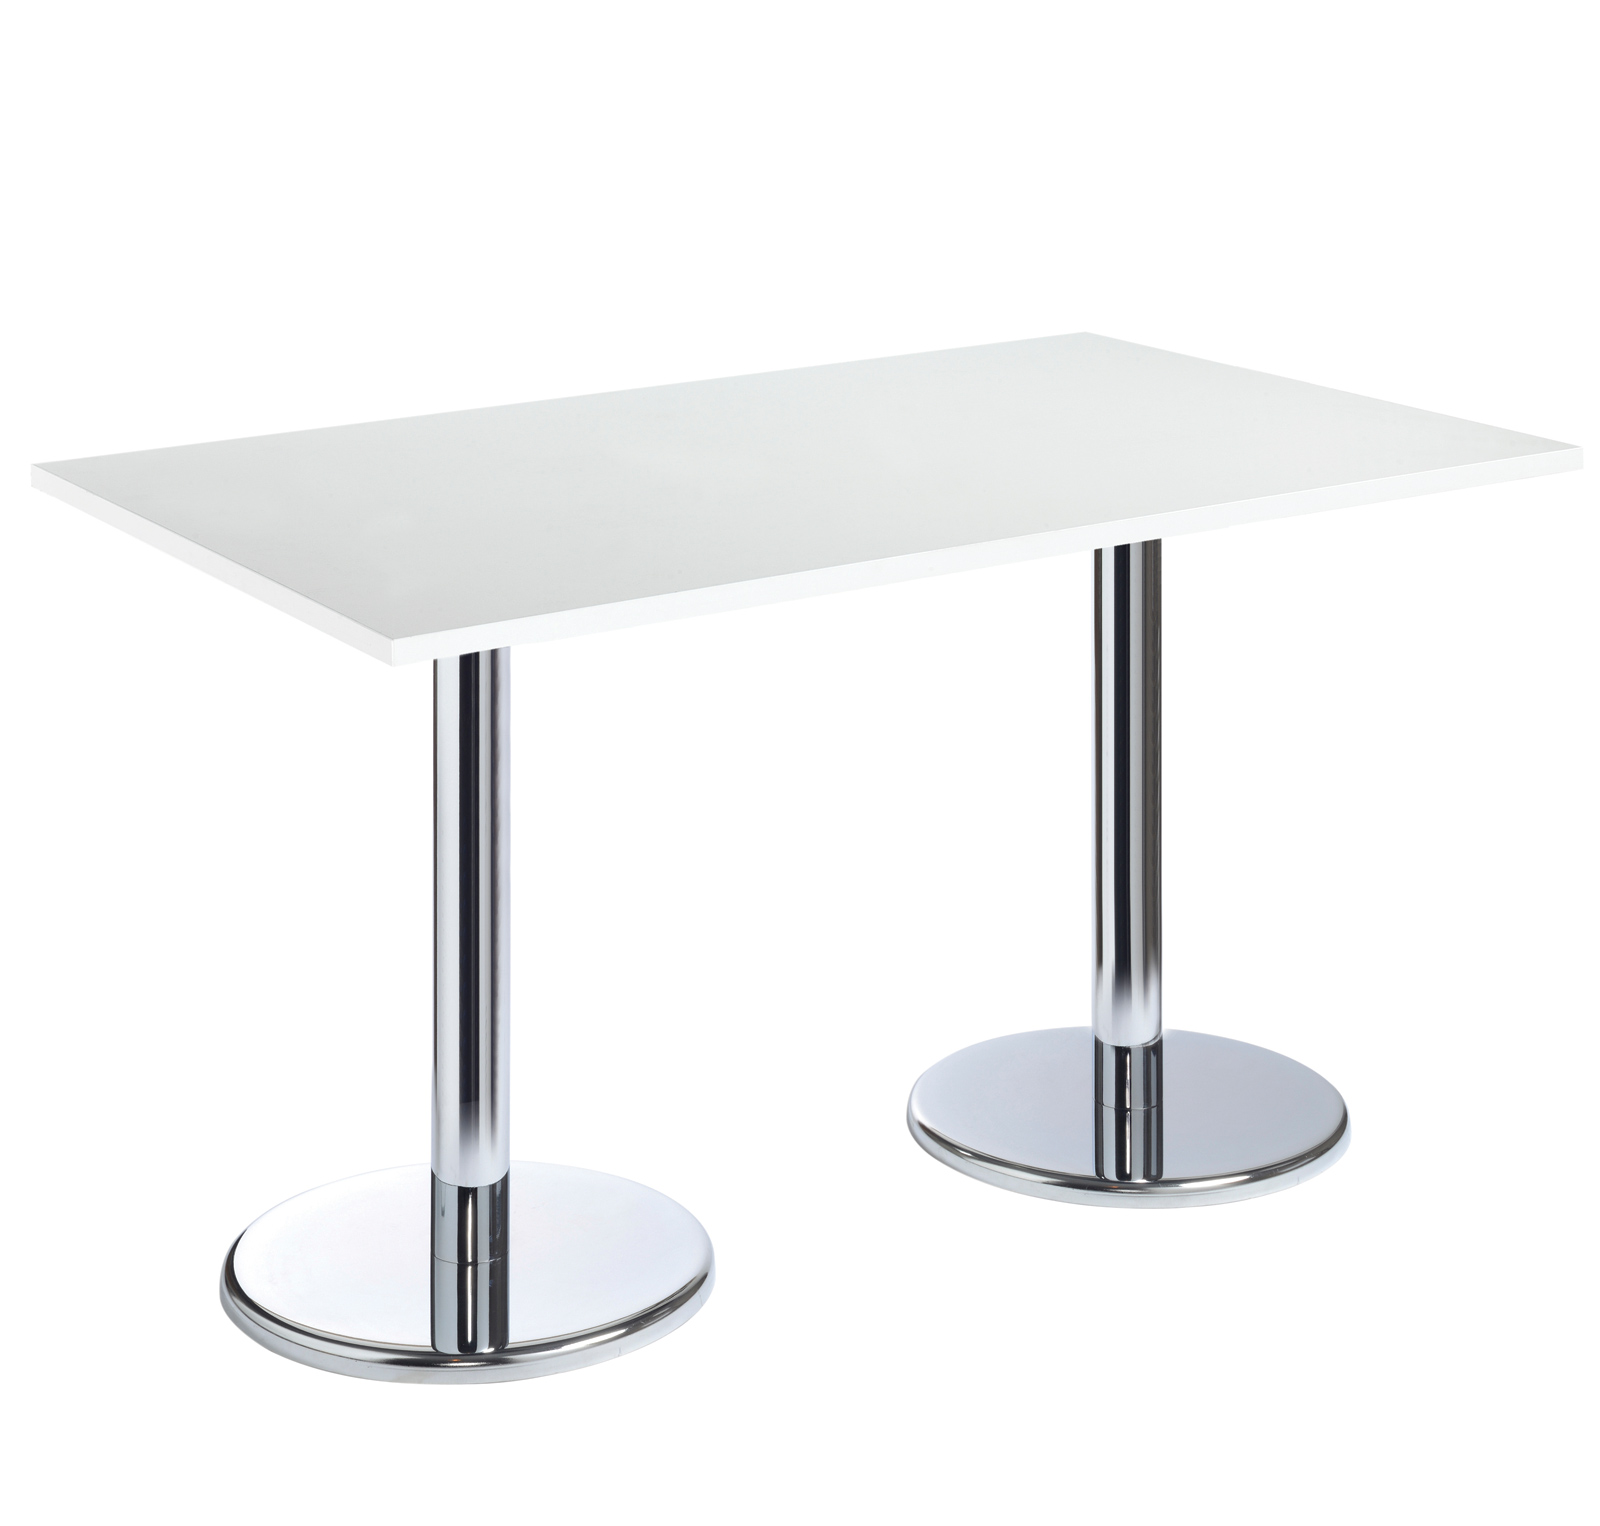 Pisa Rectangular Table With Round Chrome Base 1600mm X 800mm   White